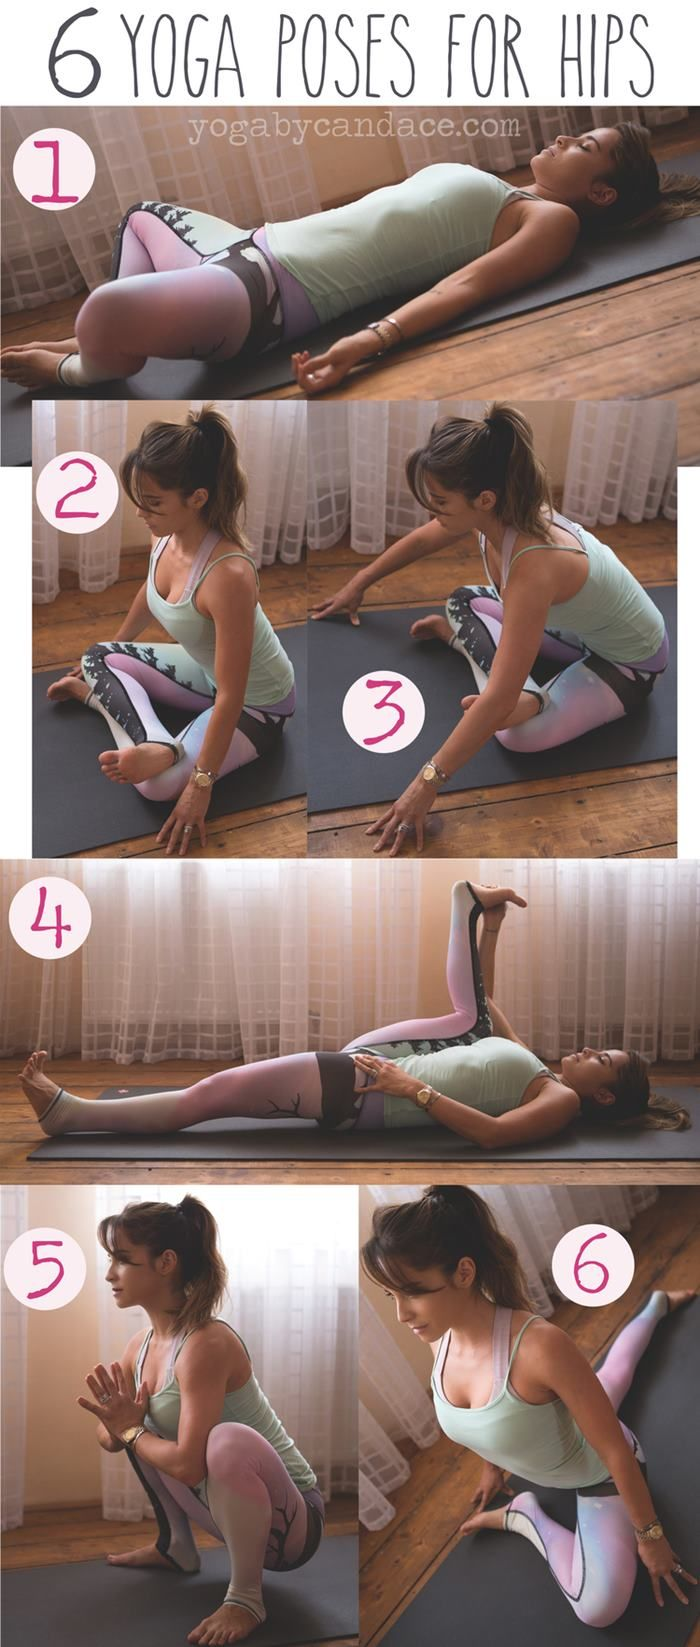 These poses will help you open the hips, release tension in the lower back and legs. Some of the yoga poses are baby pose and fire log pose.